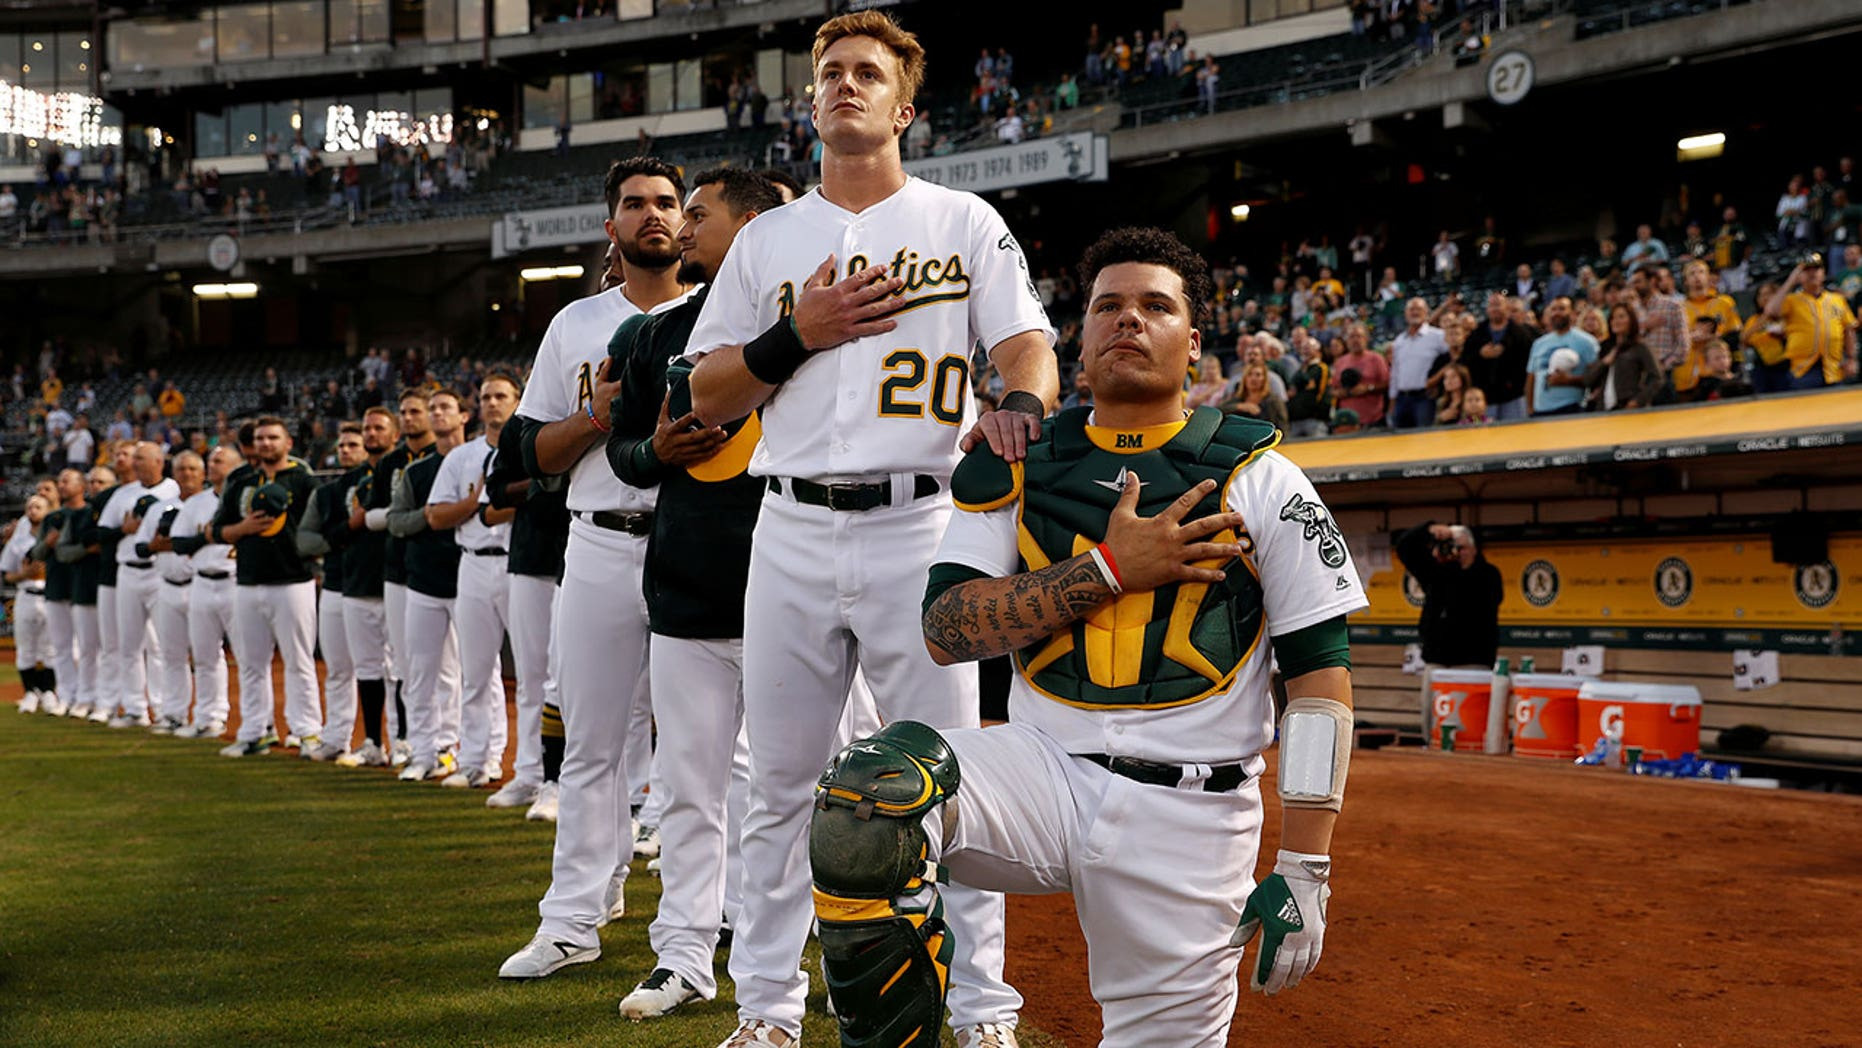 Bruce Maxwell of the Oakland Athletics kneels as teammate Mark Canha #20 places his hand on Maxwell's shoulder during the singing of the national anthem on September 25.